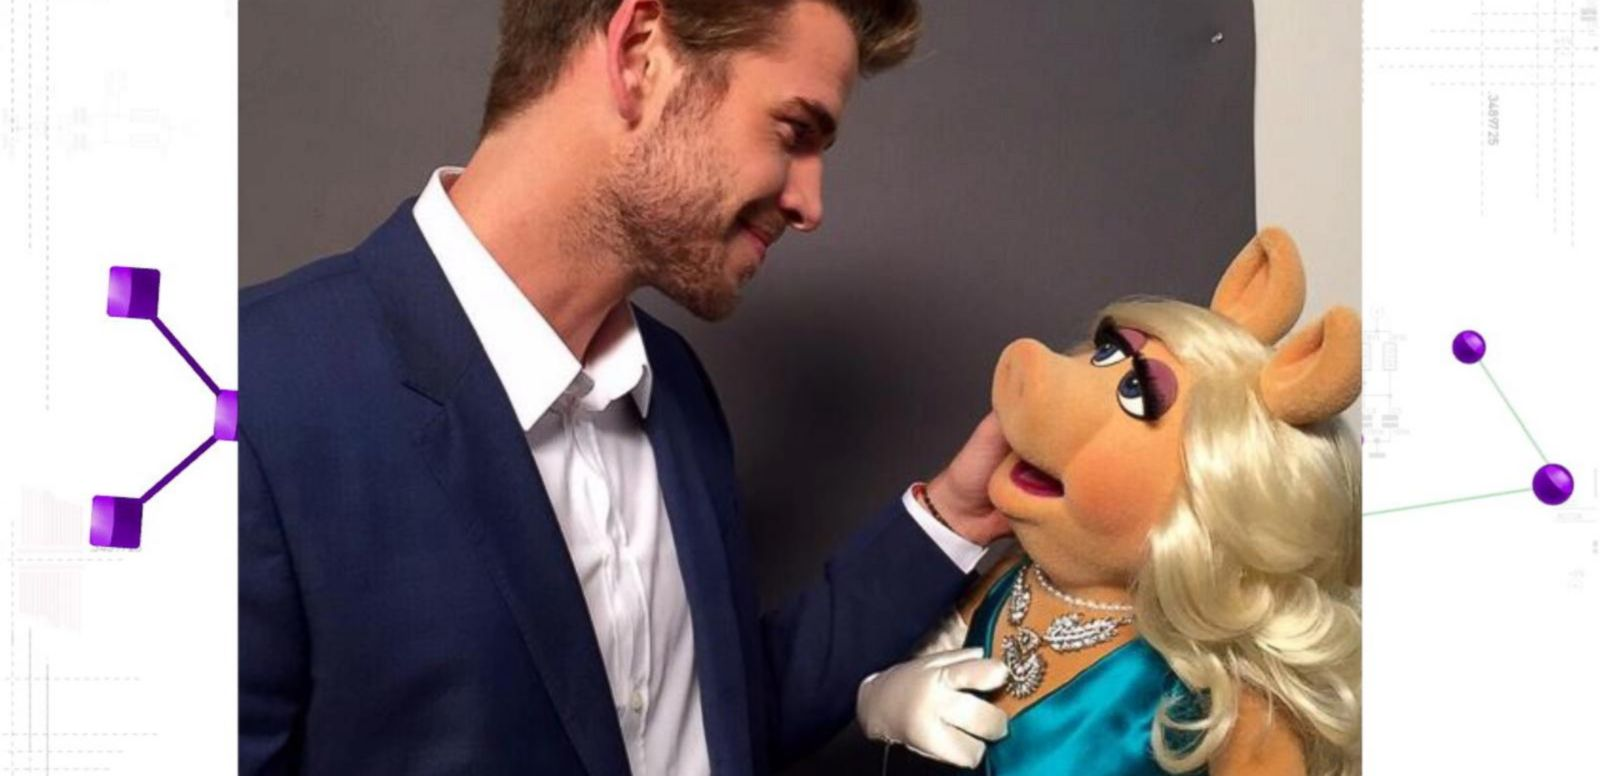 VIDEO: Liam Hemsworth Flirts With Missy Piggy: 'Most Beautiful Girl in the World'